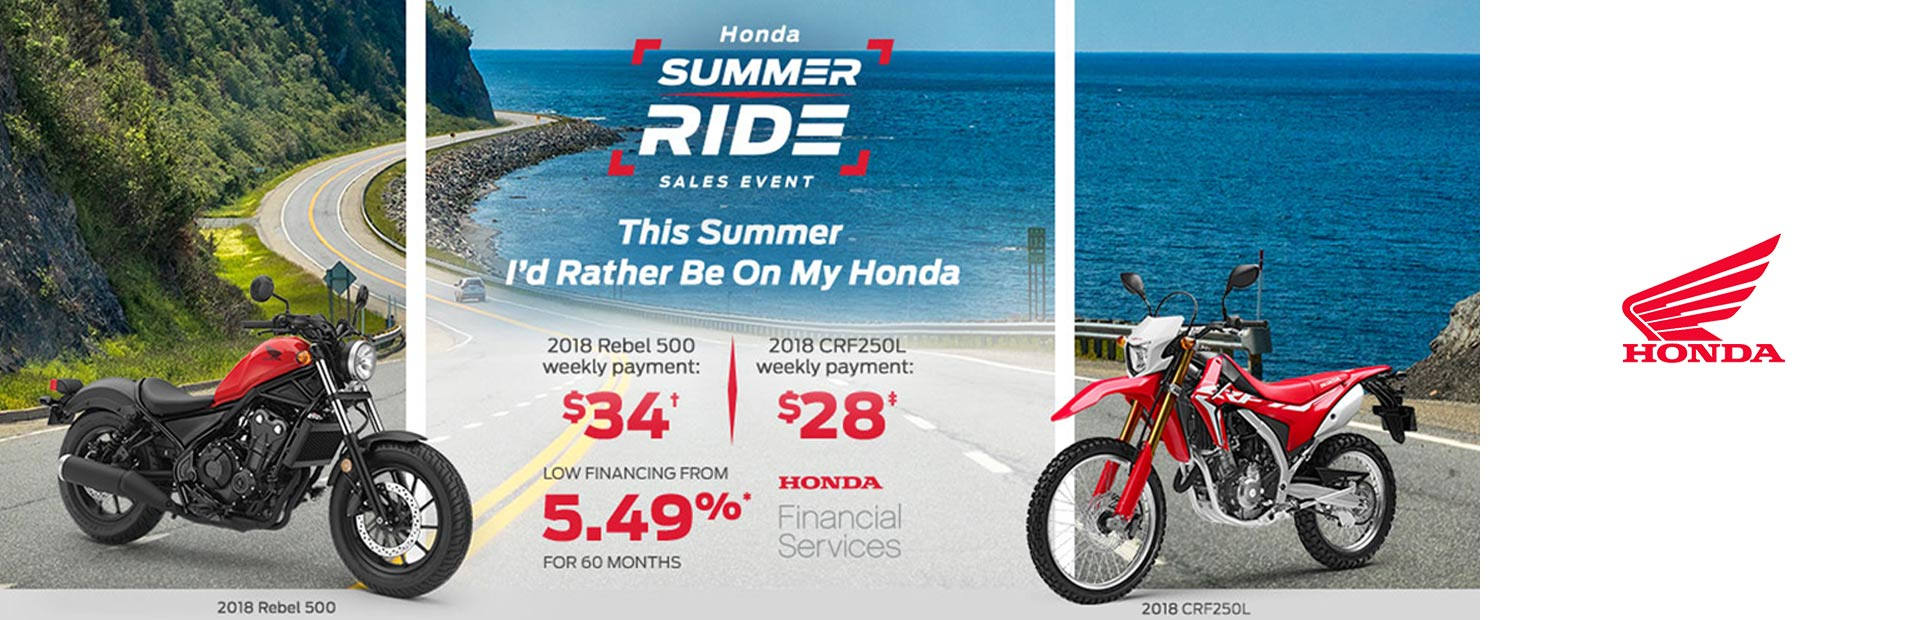 Summer Ride Sales Event